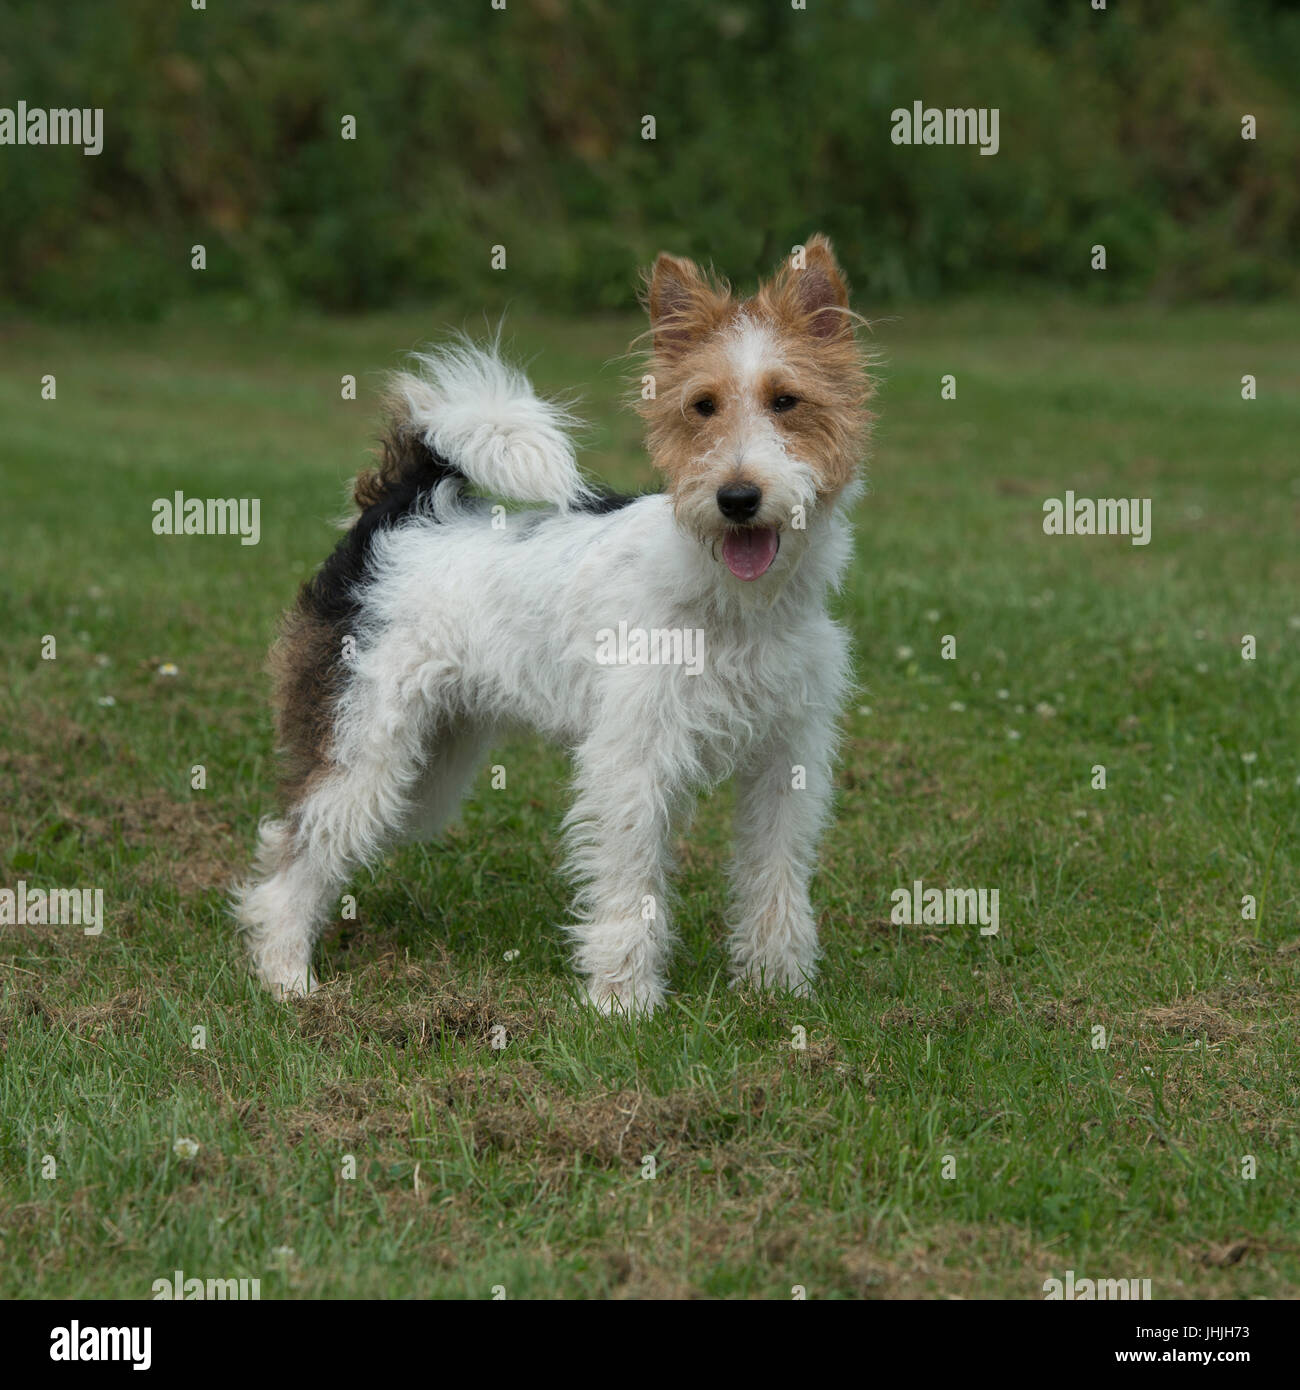 Wire Haired Fox Terrier Stockfotos & Wire Haired Fox Terrier ...